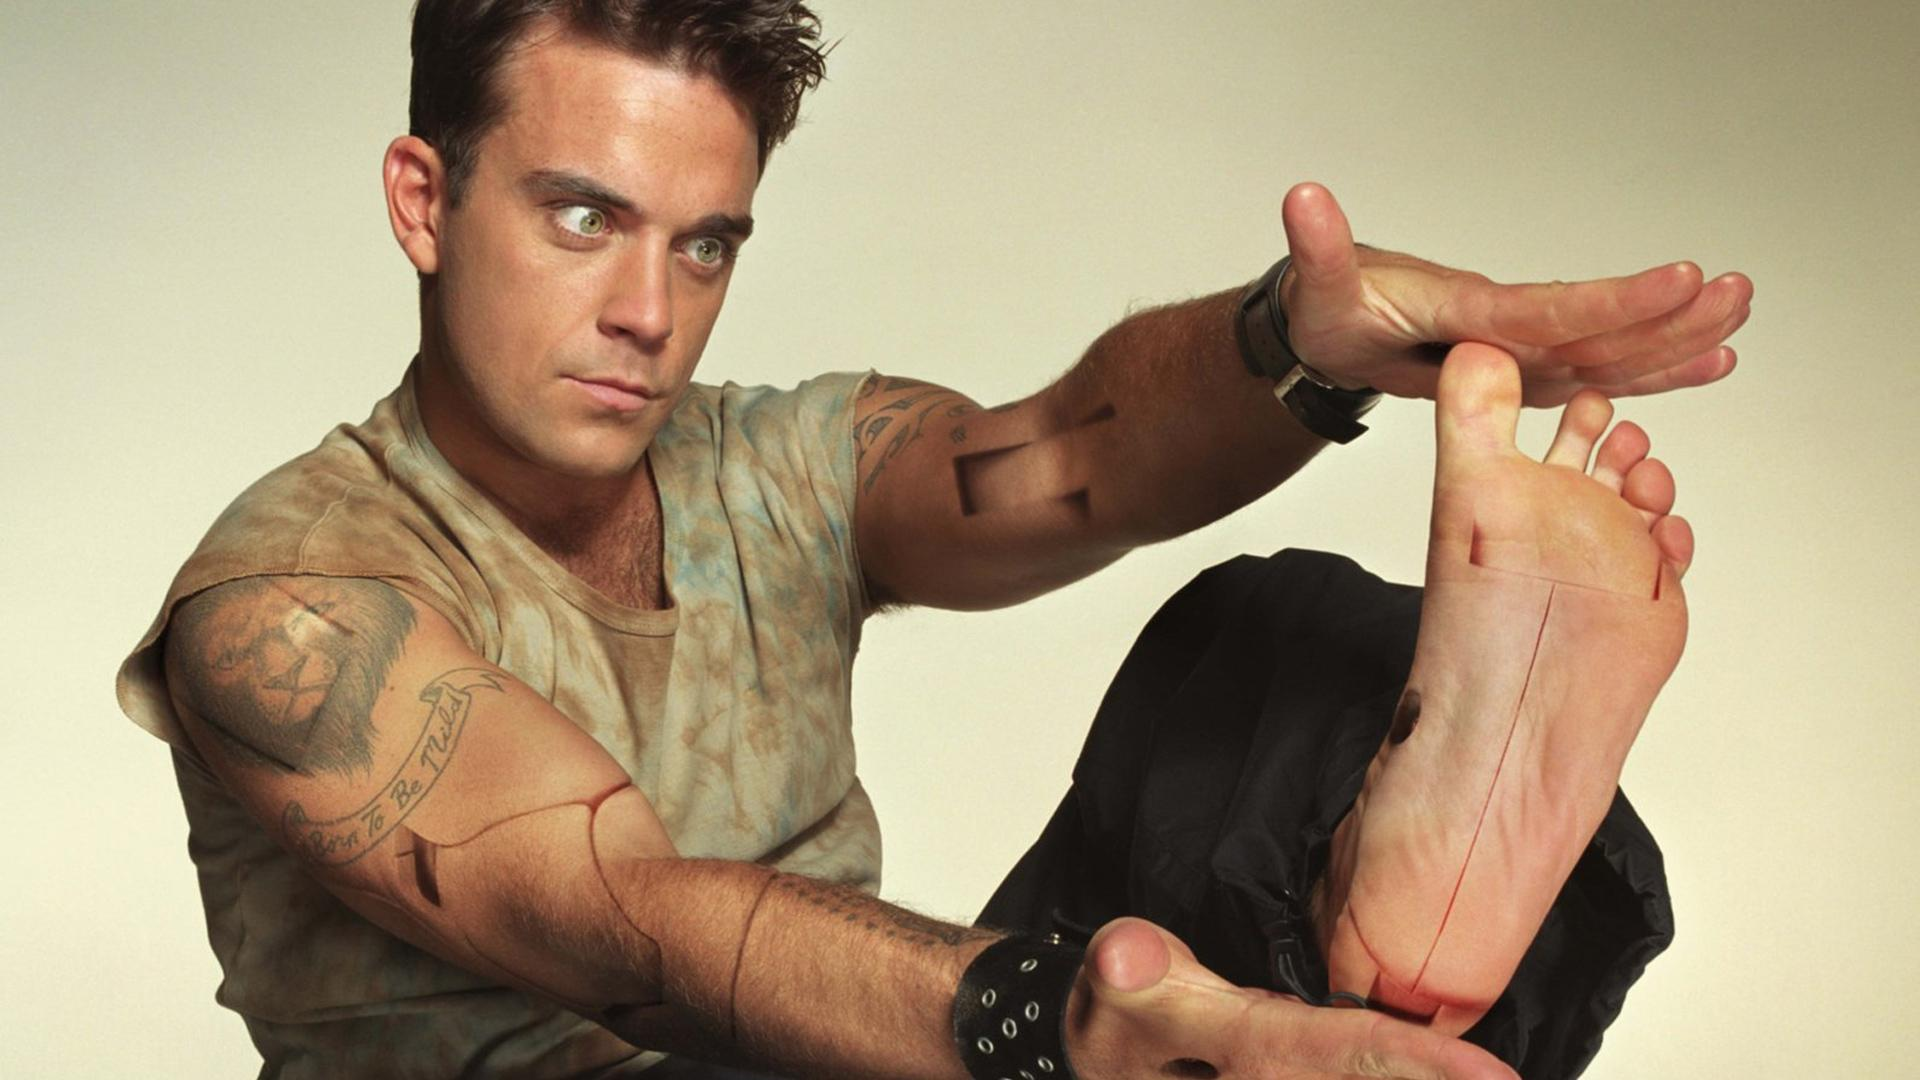 Robbie Williams Wallpaper , (37+) Pictures